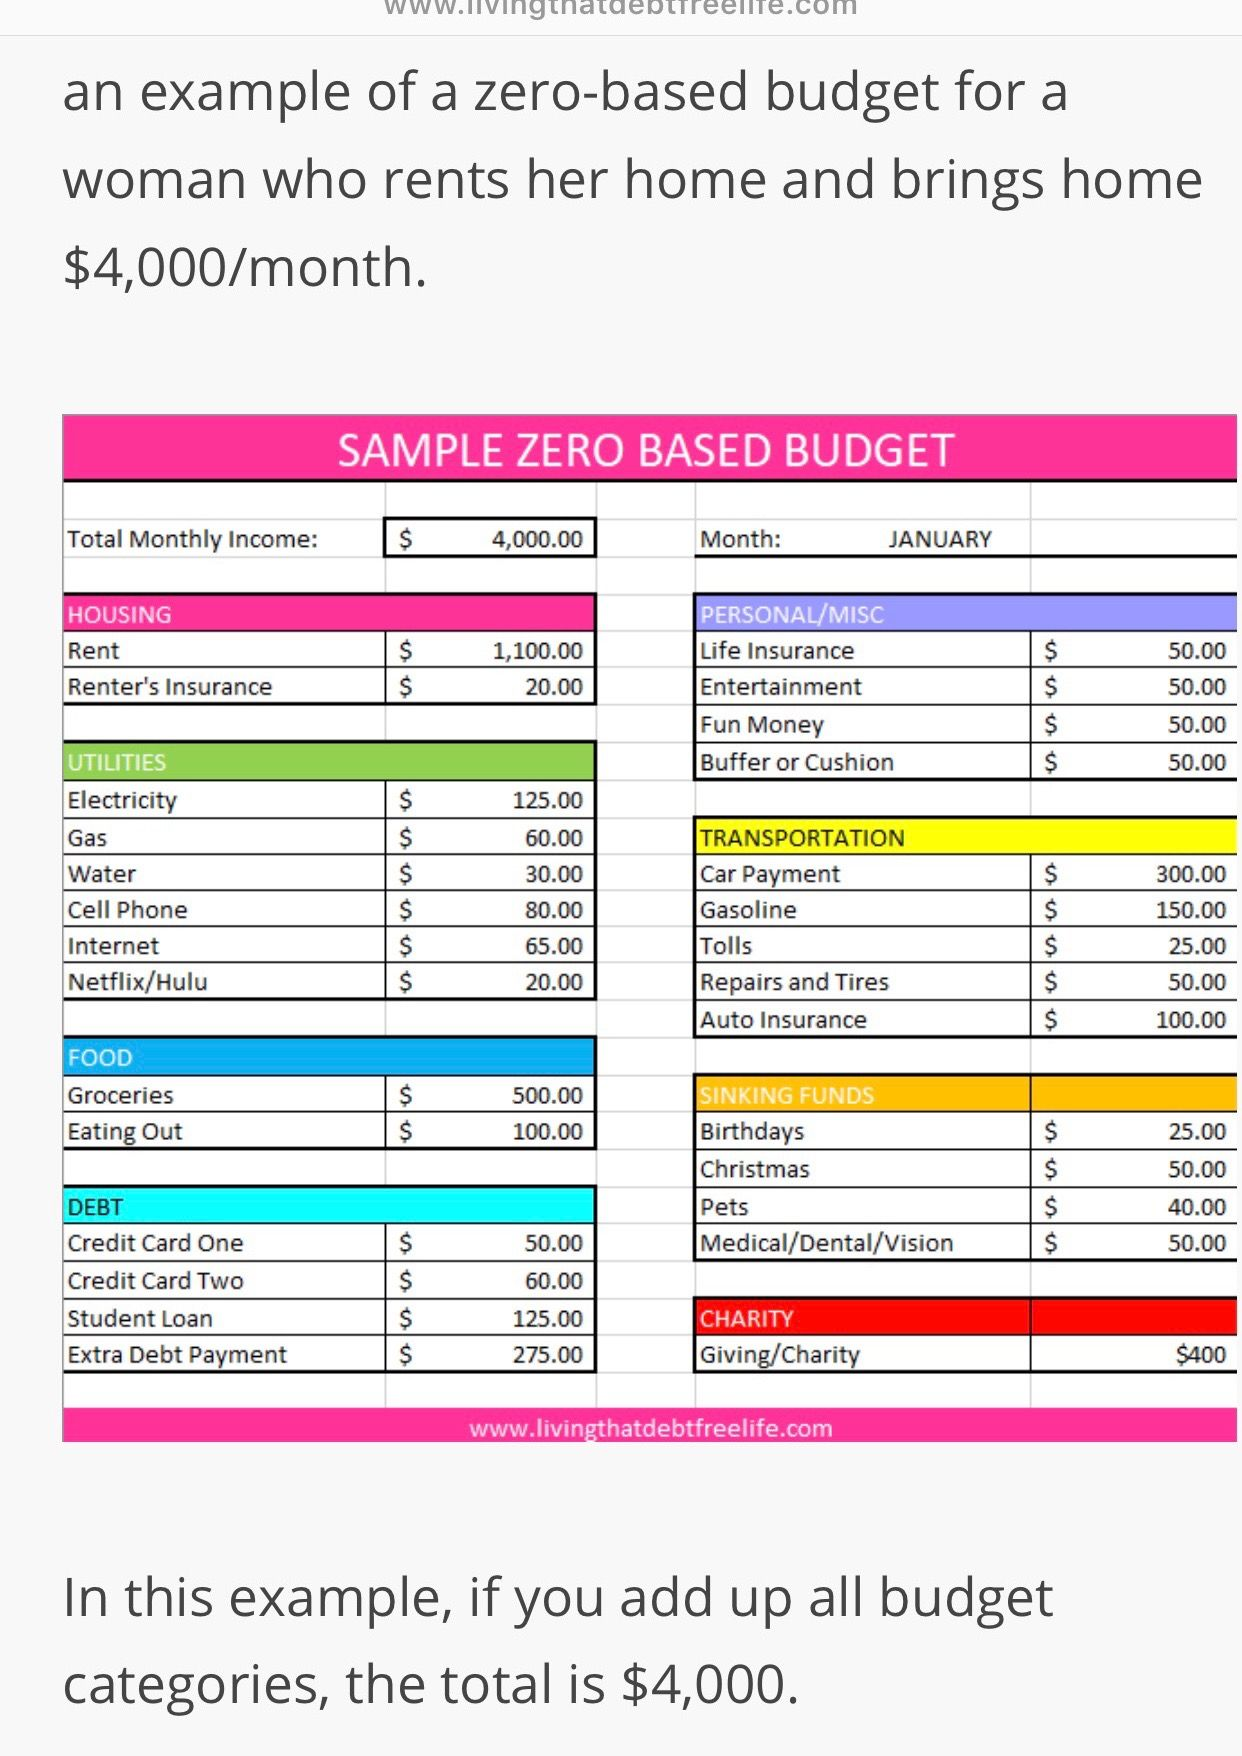 Pin by Miss Jess on Budget Life Renters insurance, Budgeting